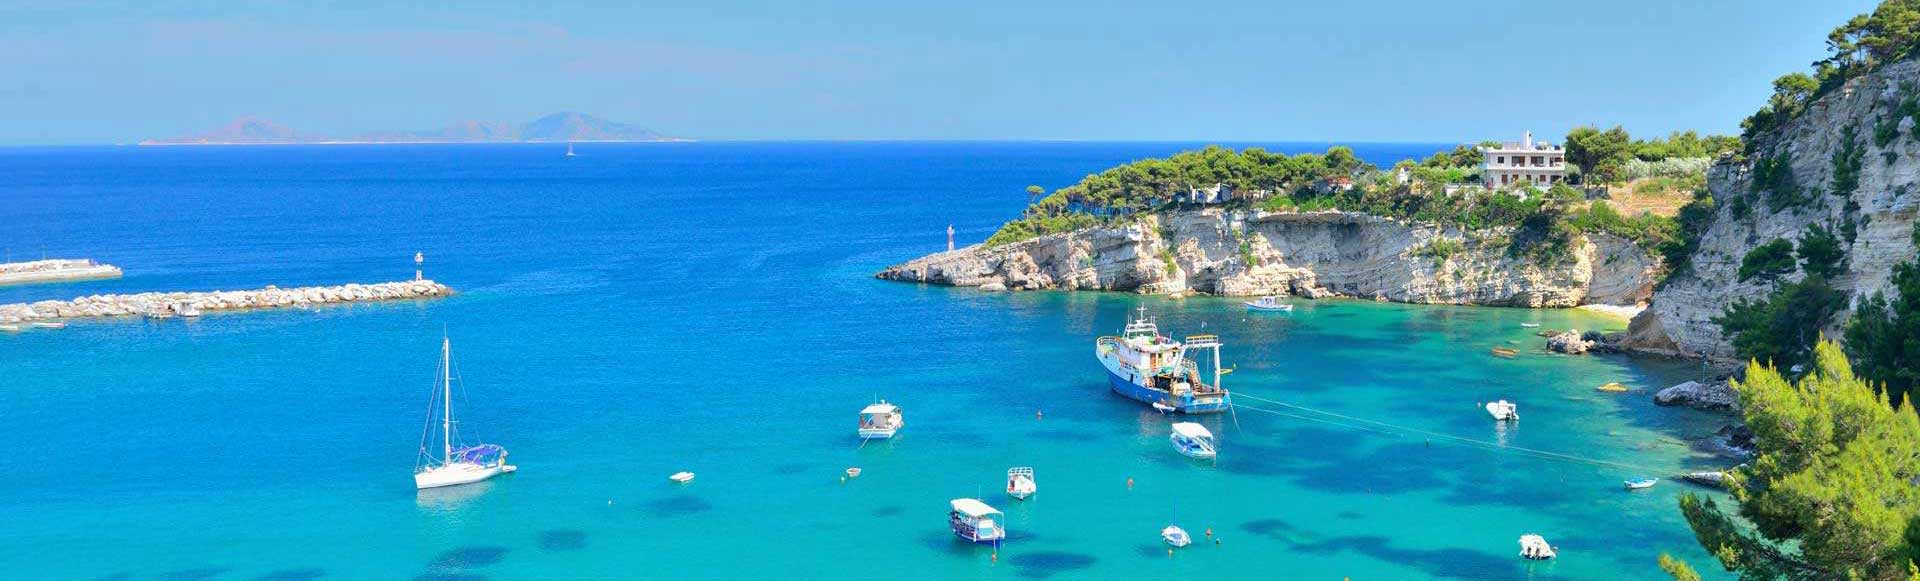 Yacht Charter Sporades | Northern Sporades Islands, Greece